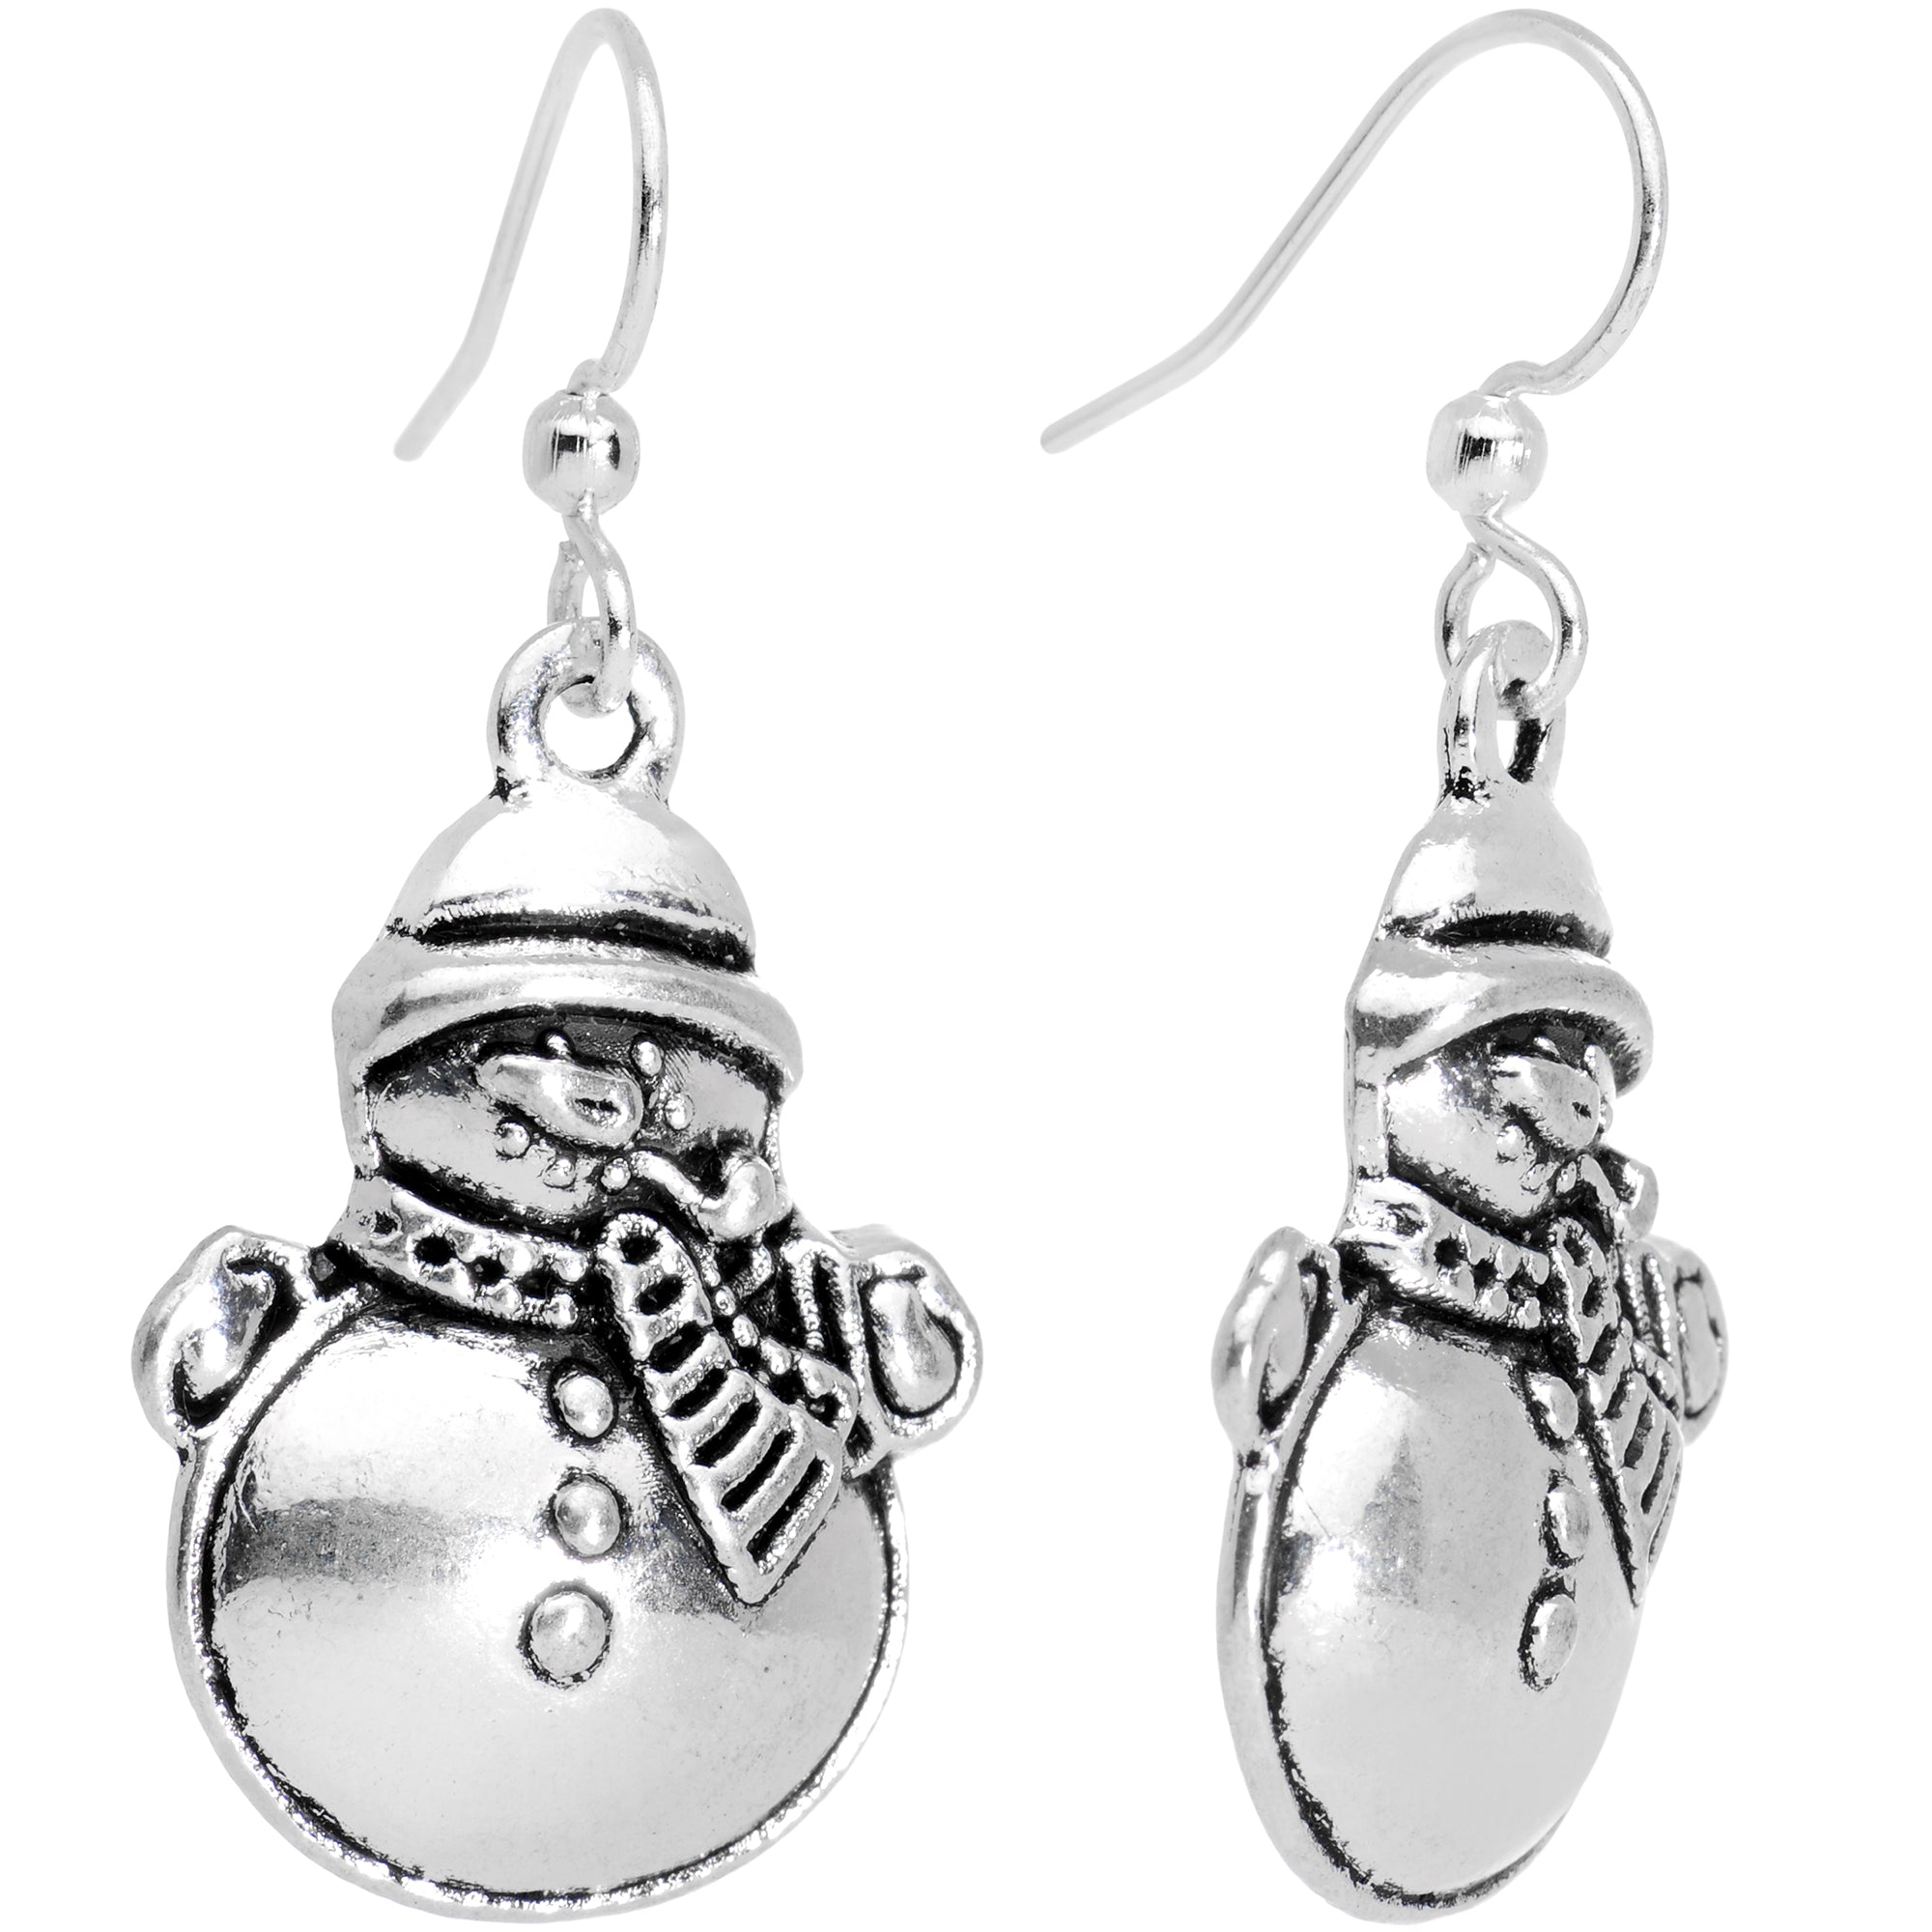 Silver Plated Chubby Christmas Snowmen Fishhook Earrings